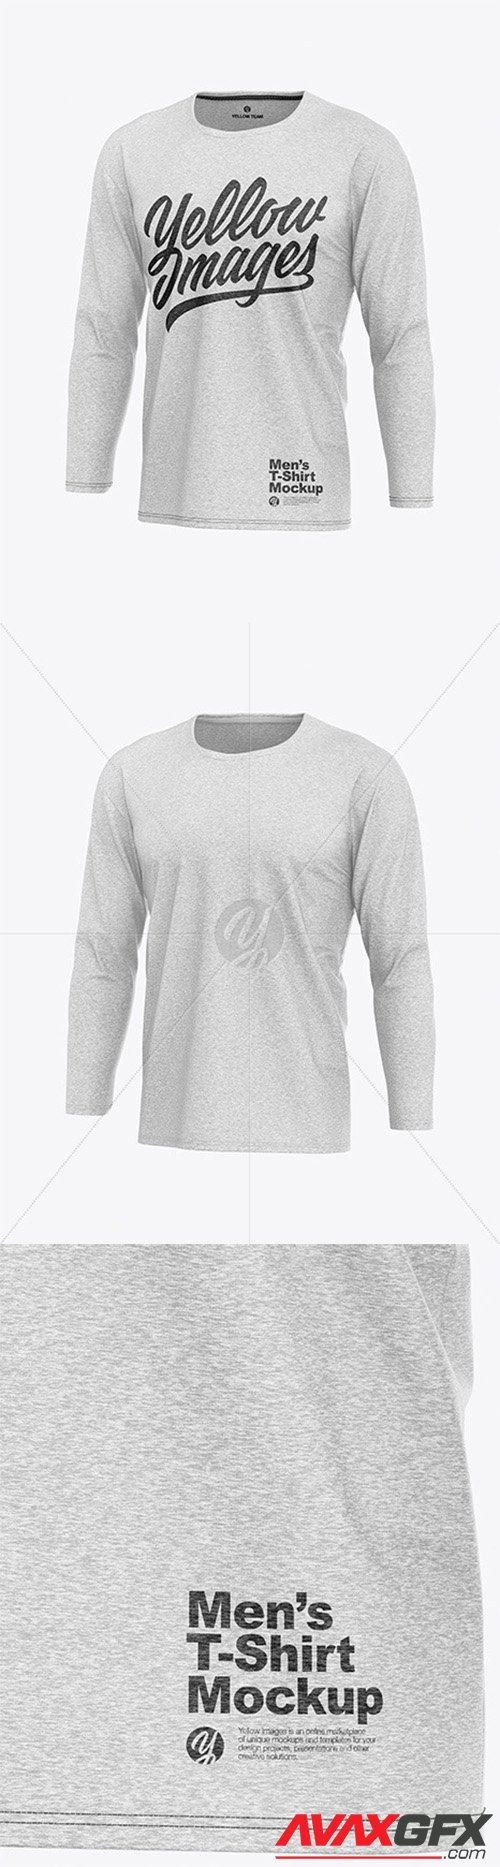 Download Melange Men S Long Sleeve T Shirt Mockup 55459 Avaxgfx All Downloads That You Need In One Place Graphic From Nitroflare Rapidgator PSD Mockup Templates